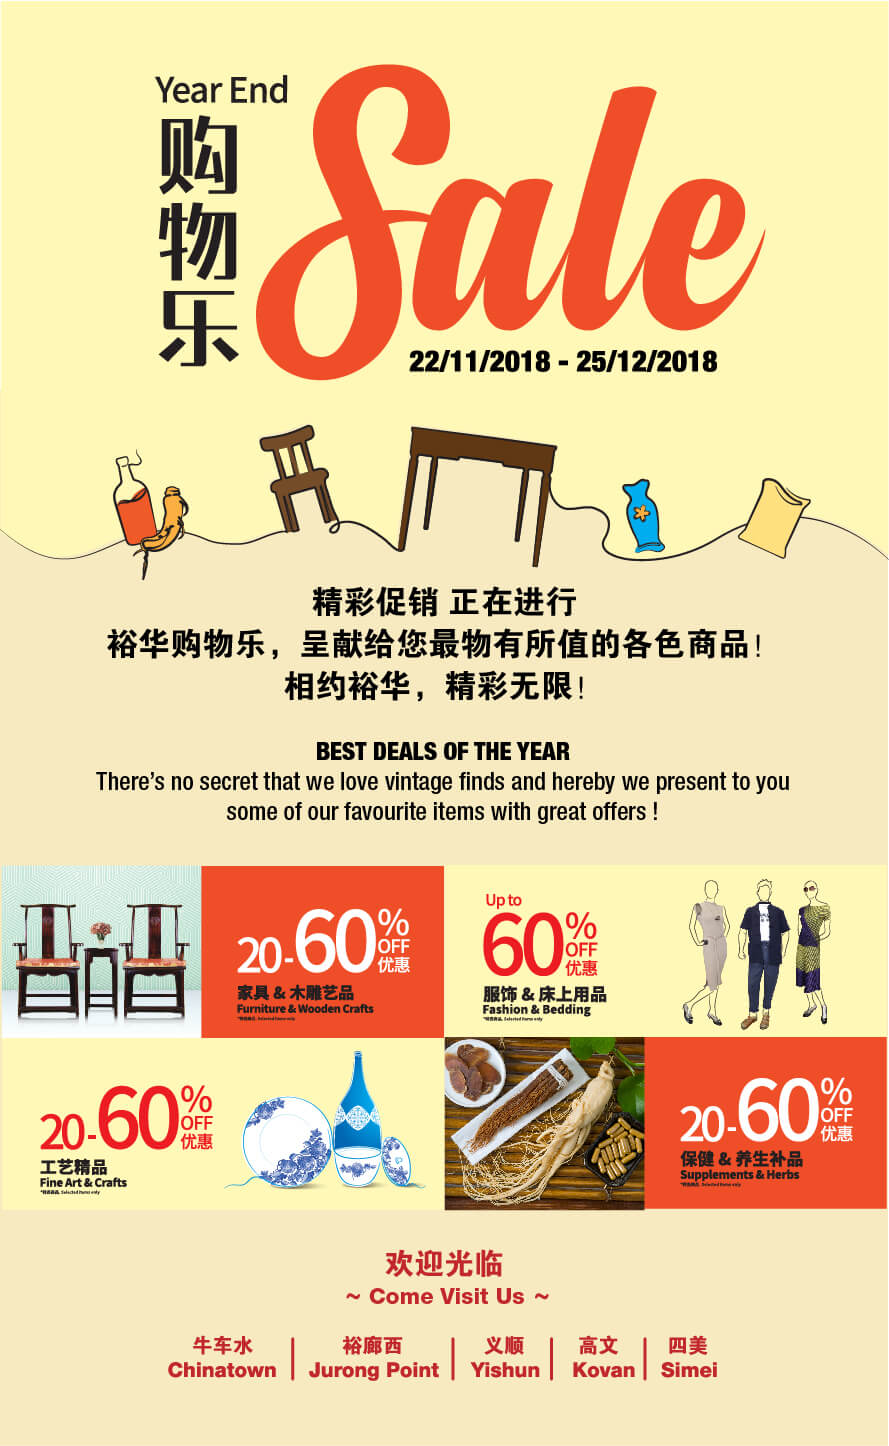 Yue Hwa Year End Sale